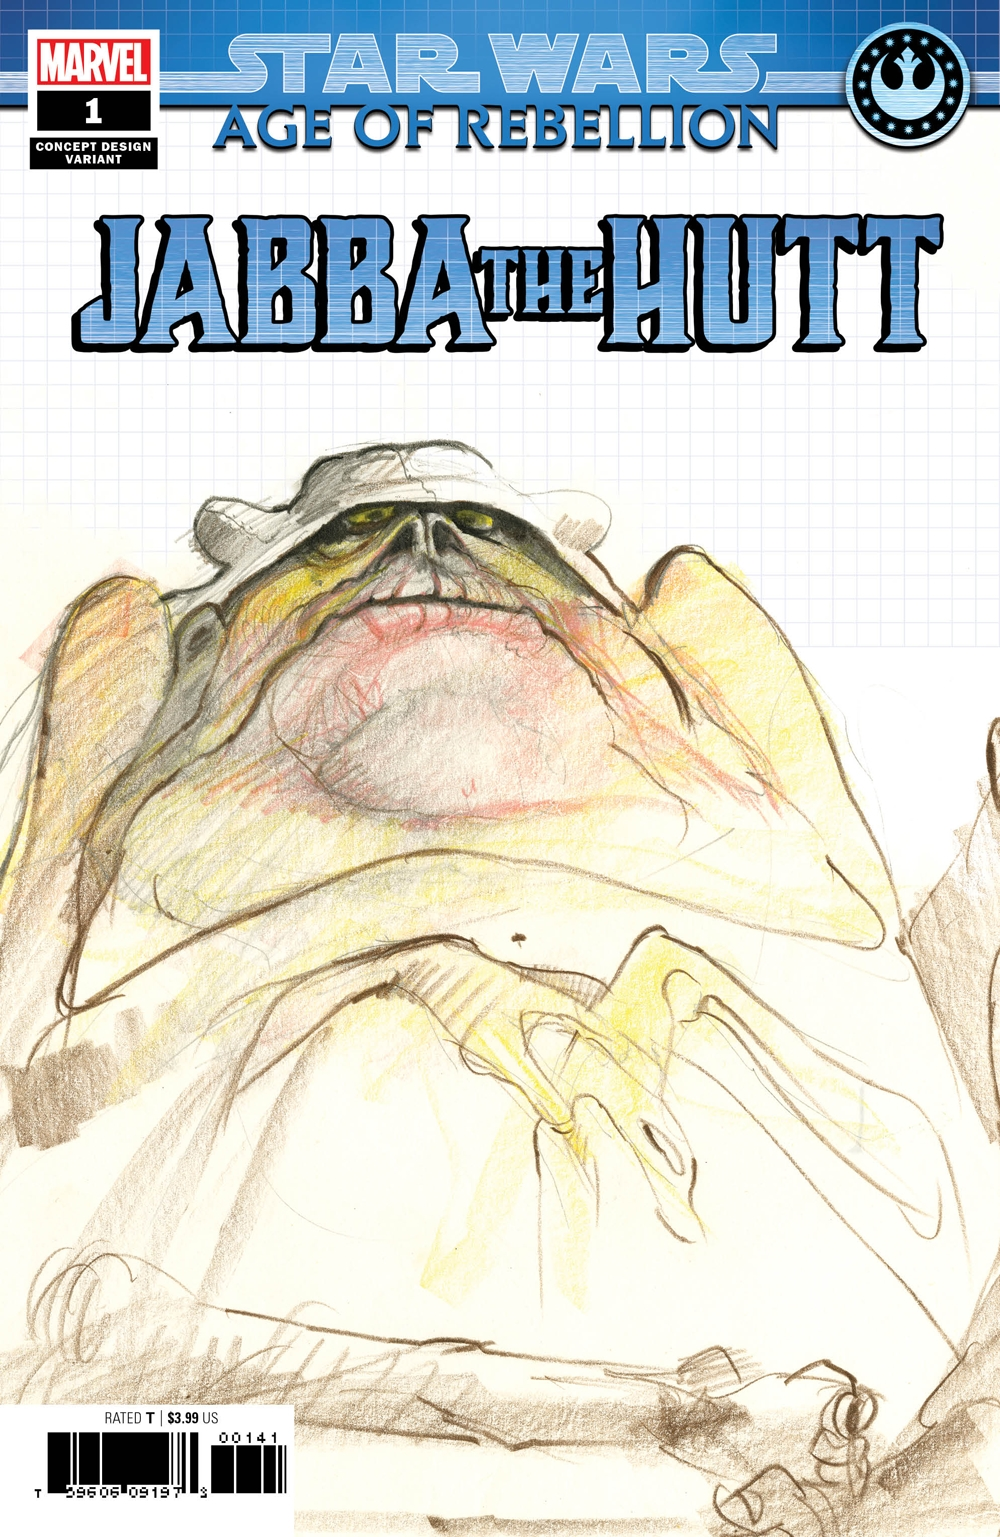 Age of Rebellion: Jabba the Hutt #1 (Concept Design Variant Cover) (22.05.2019)